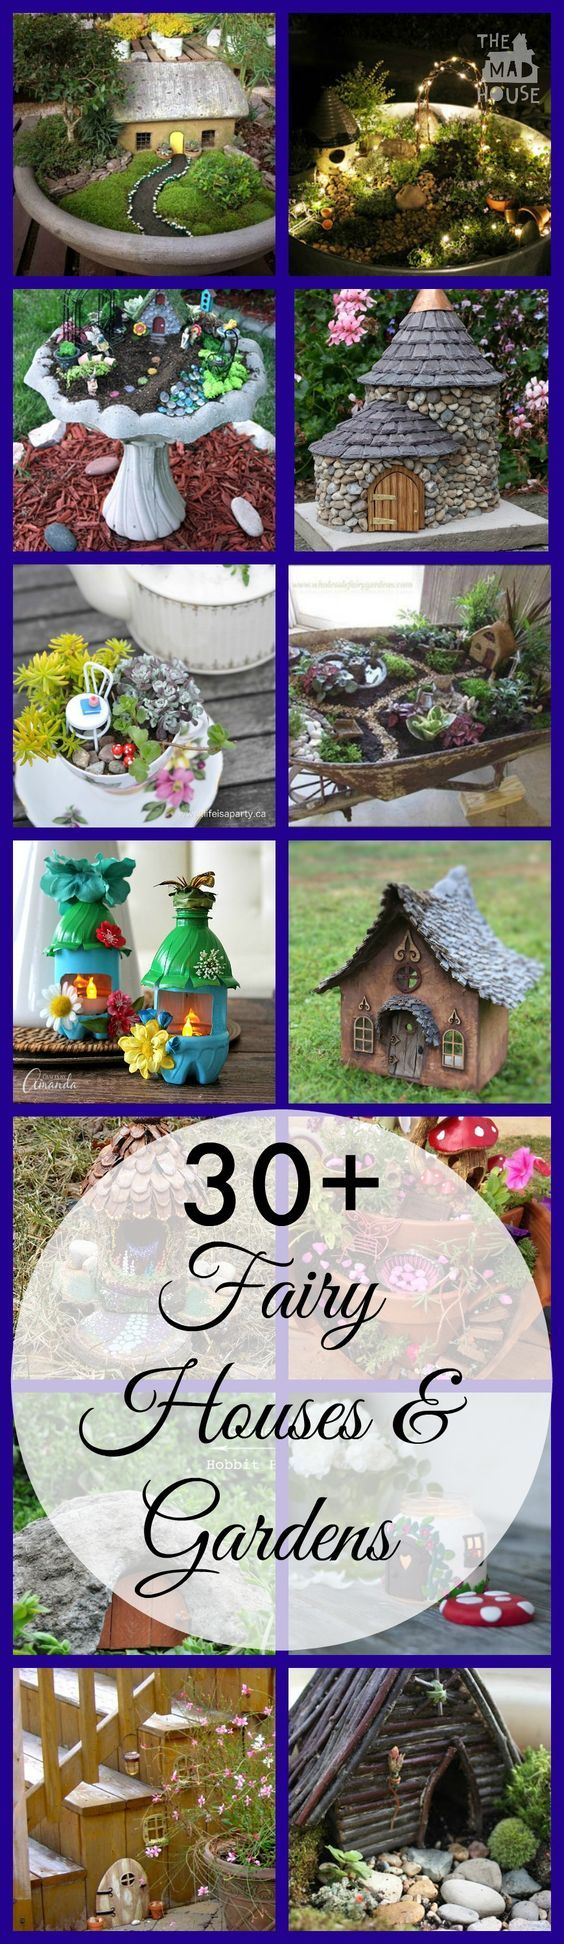 Gnome In Garden: Fabulous Fairy Gardens And Houses